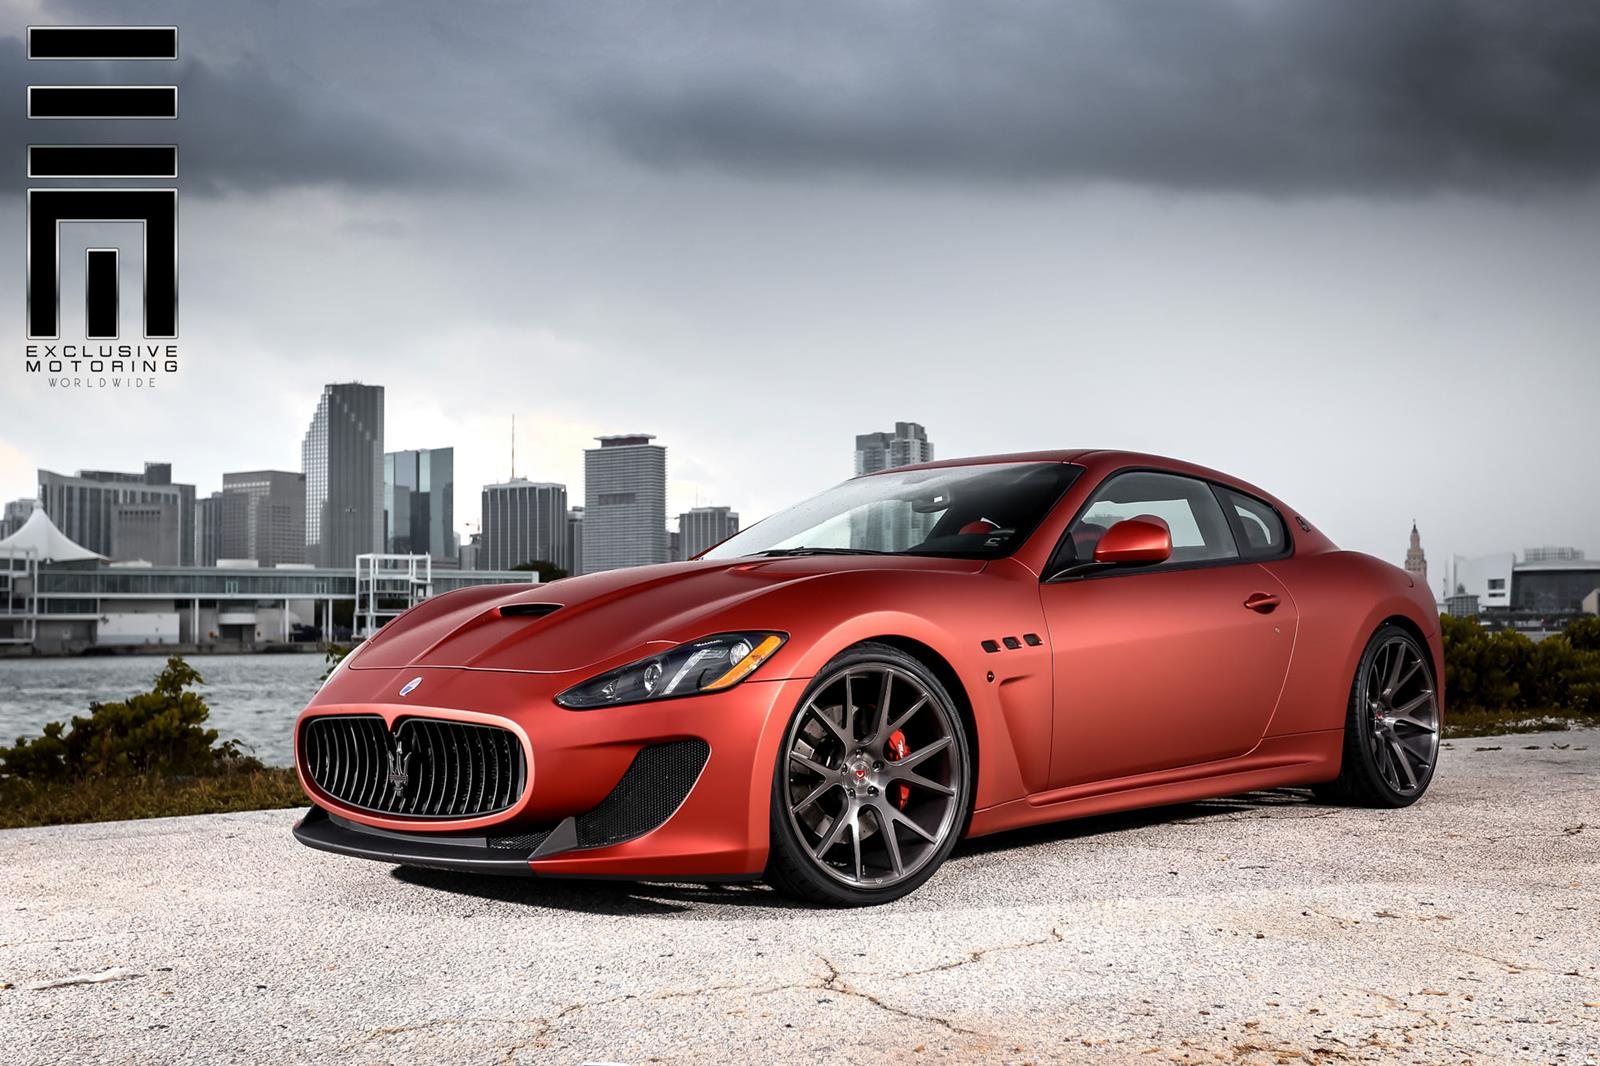 maserati granturismo mc sportline by vossen damnedwerk. Black Bedroom Furniture Sets. Home Design Ideas